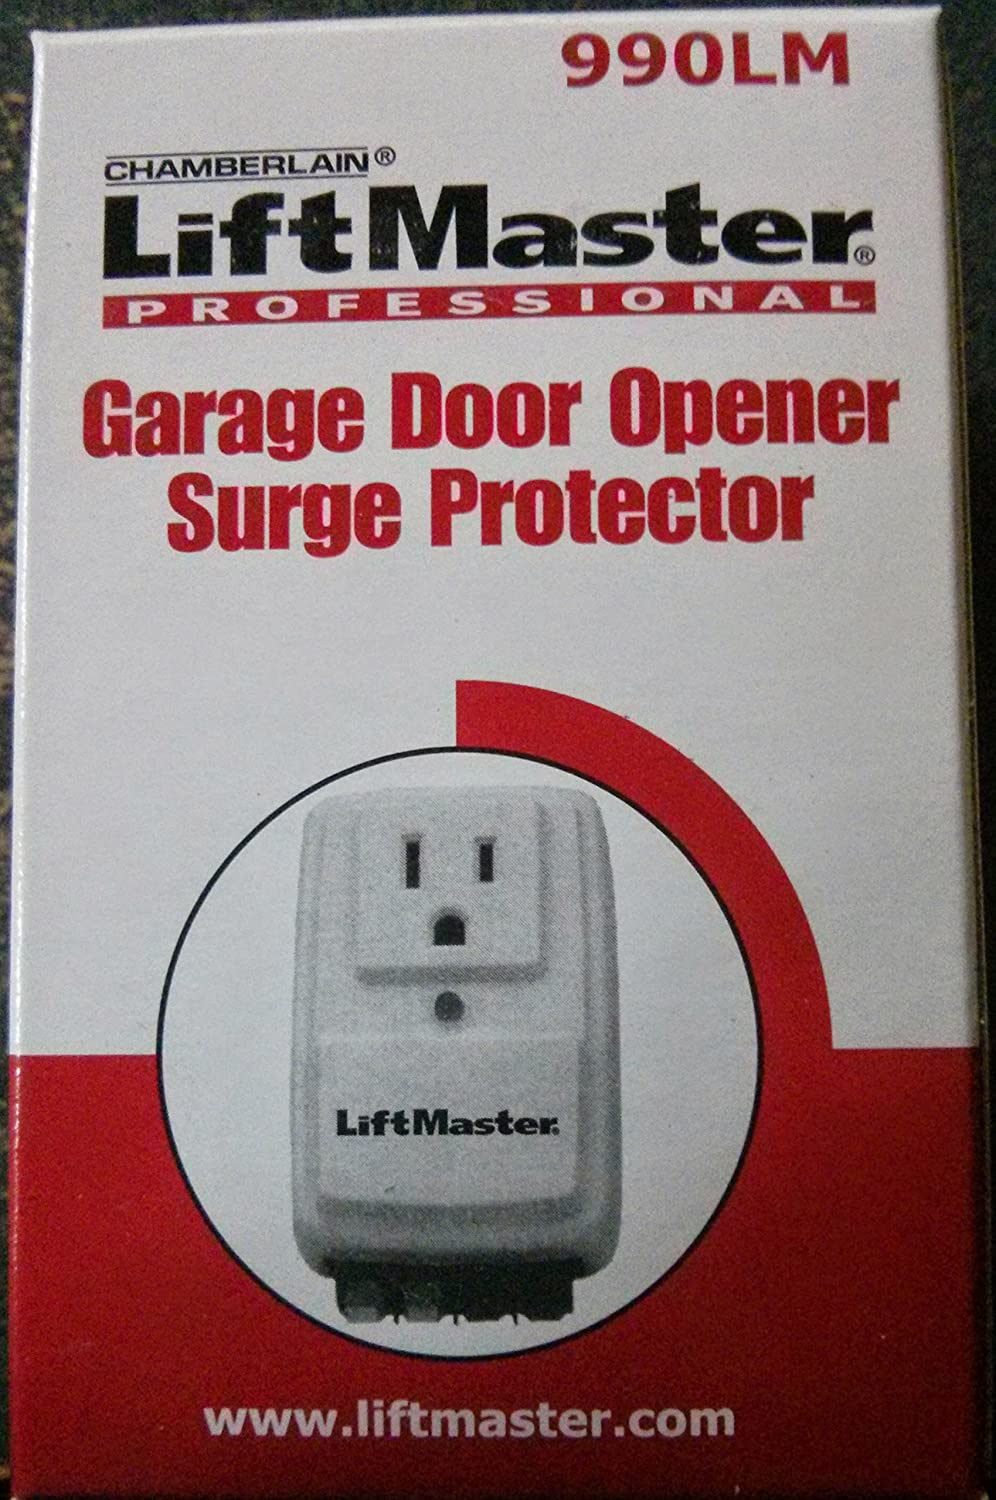 Liftmaster 990lm Garage Door Opener Surge Protector Chamberlain Wiring Diagram As Well Clss1 Computer Protectors